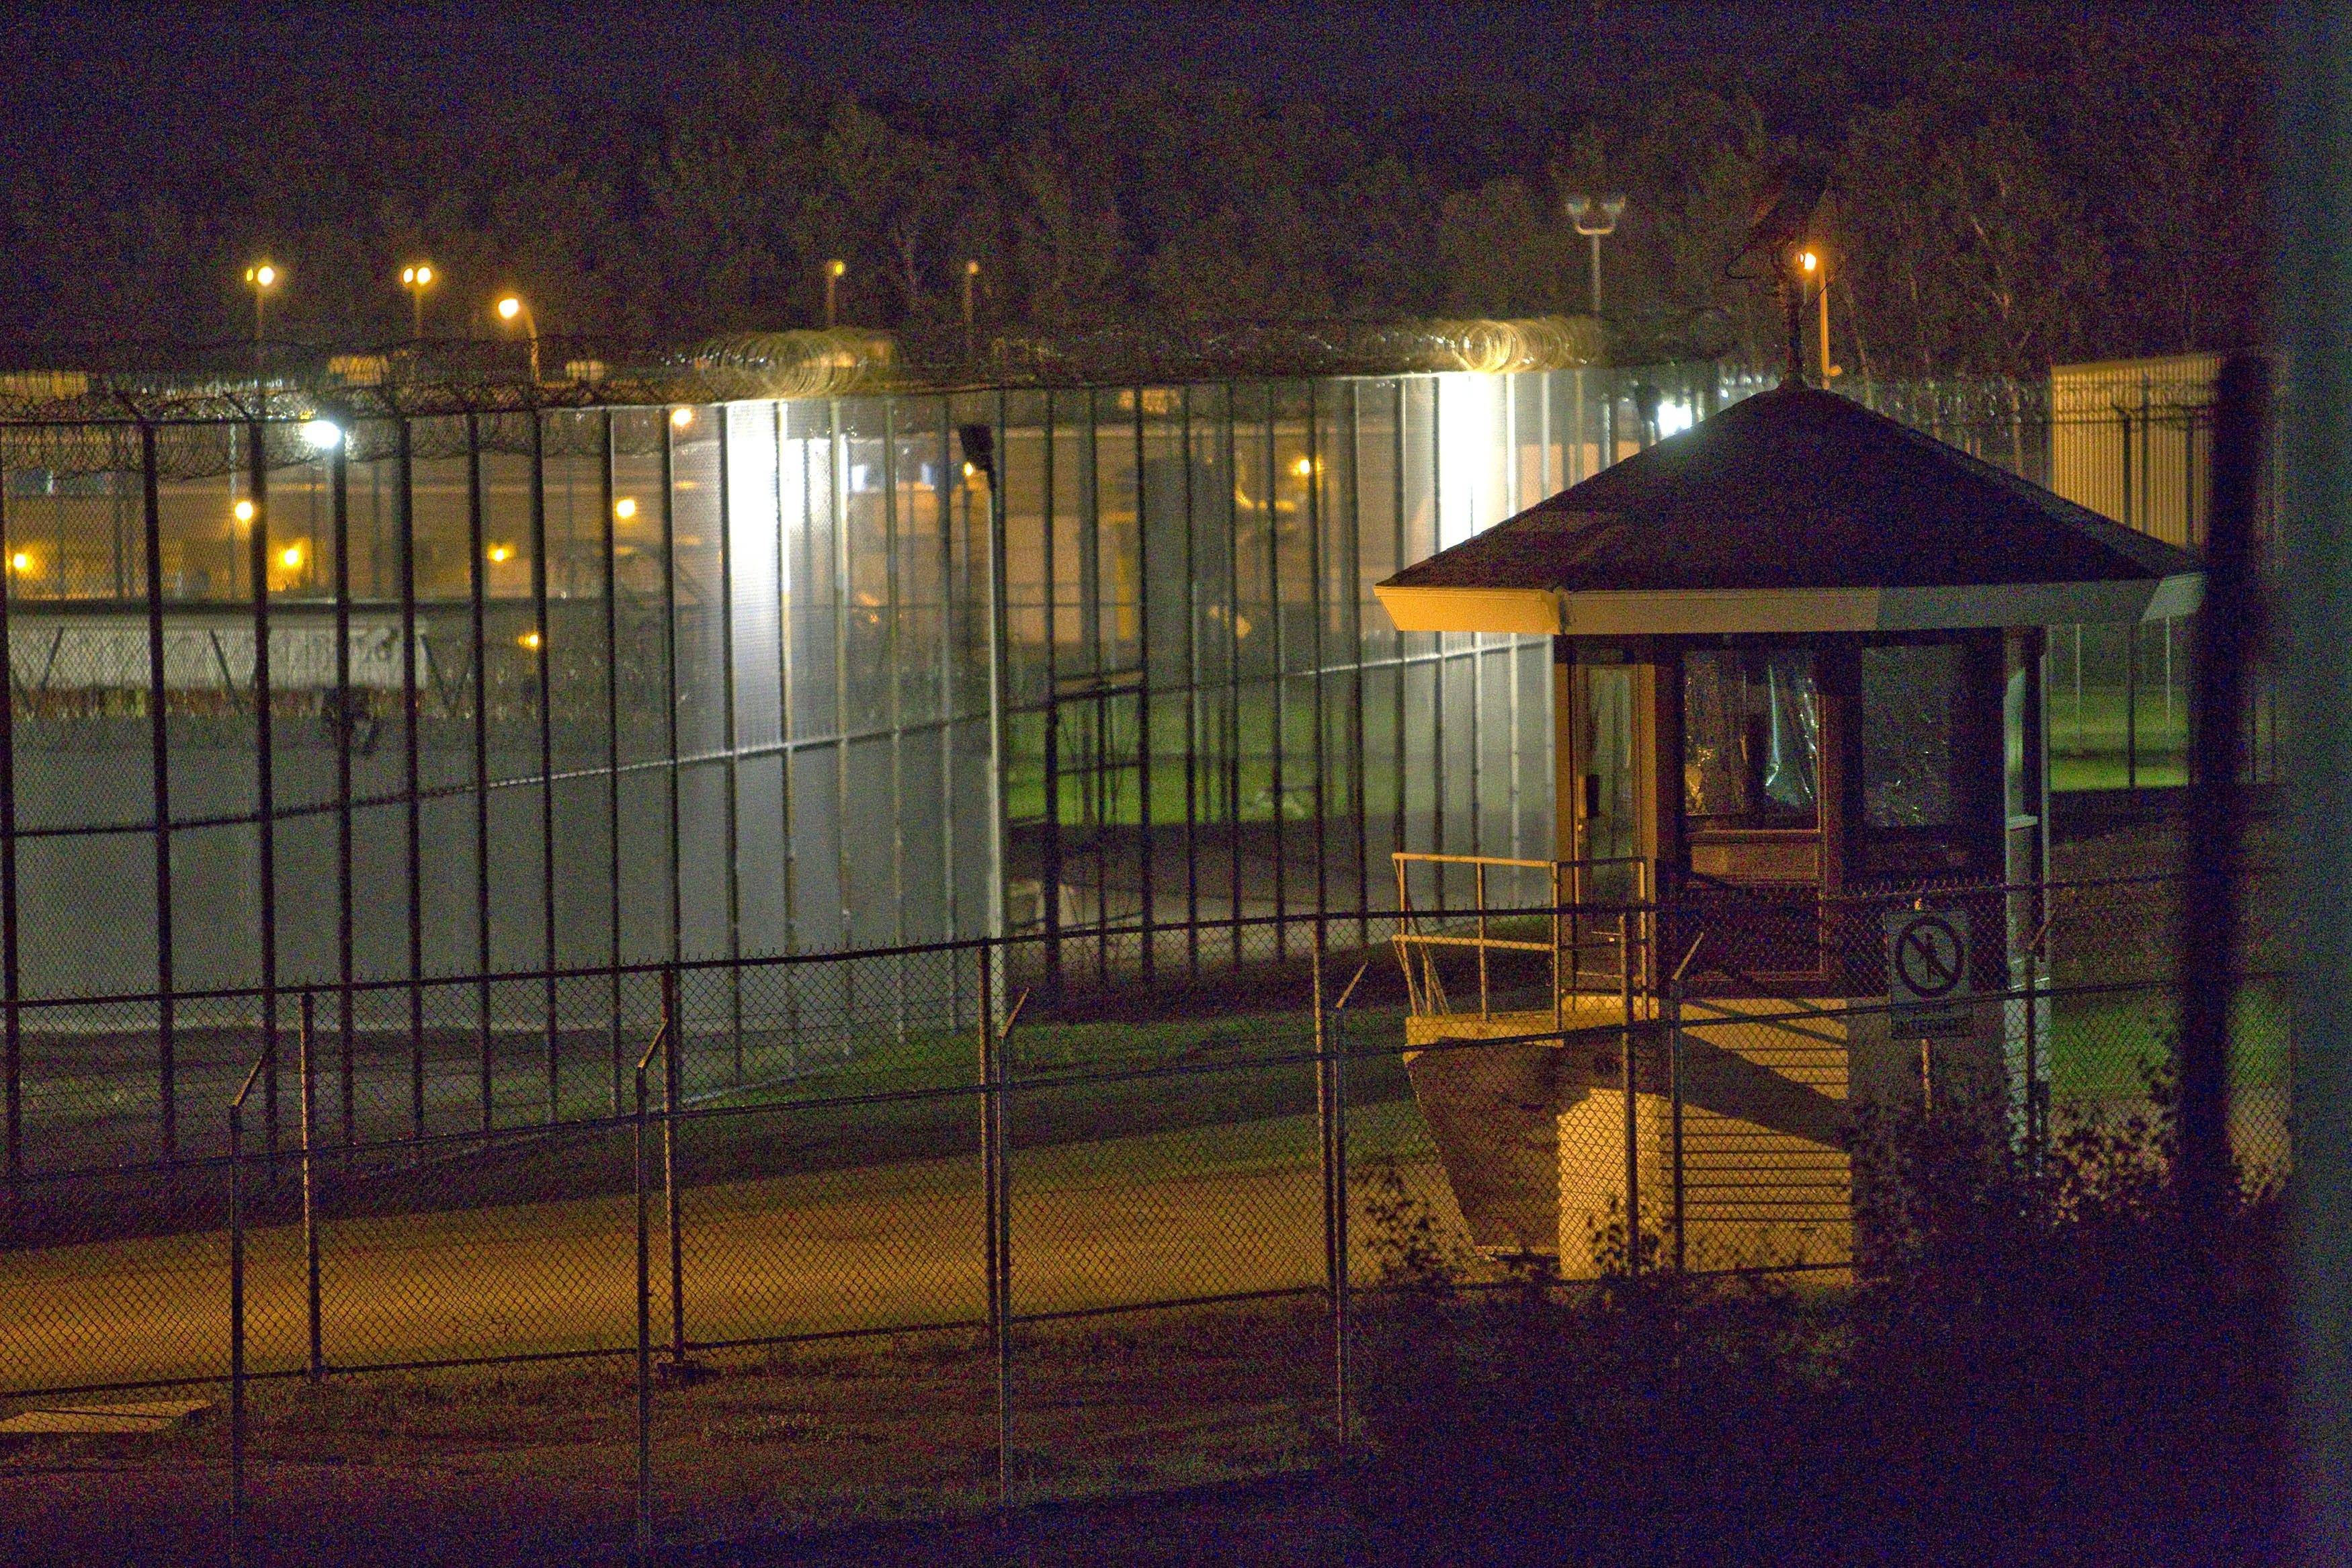 The prison yard in front of the Orsainville Detention Center is seen near Quebec City on Saturday. Three inmates have escaped from the center with the help of a helicopter, police said late Saturday.